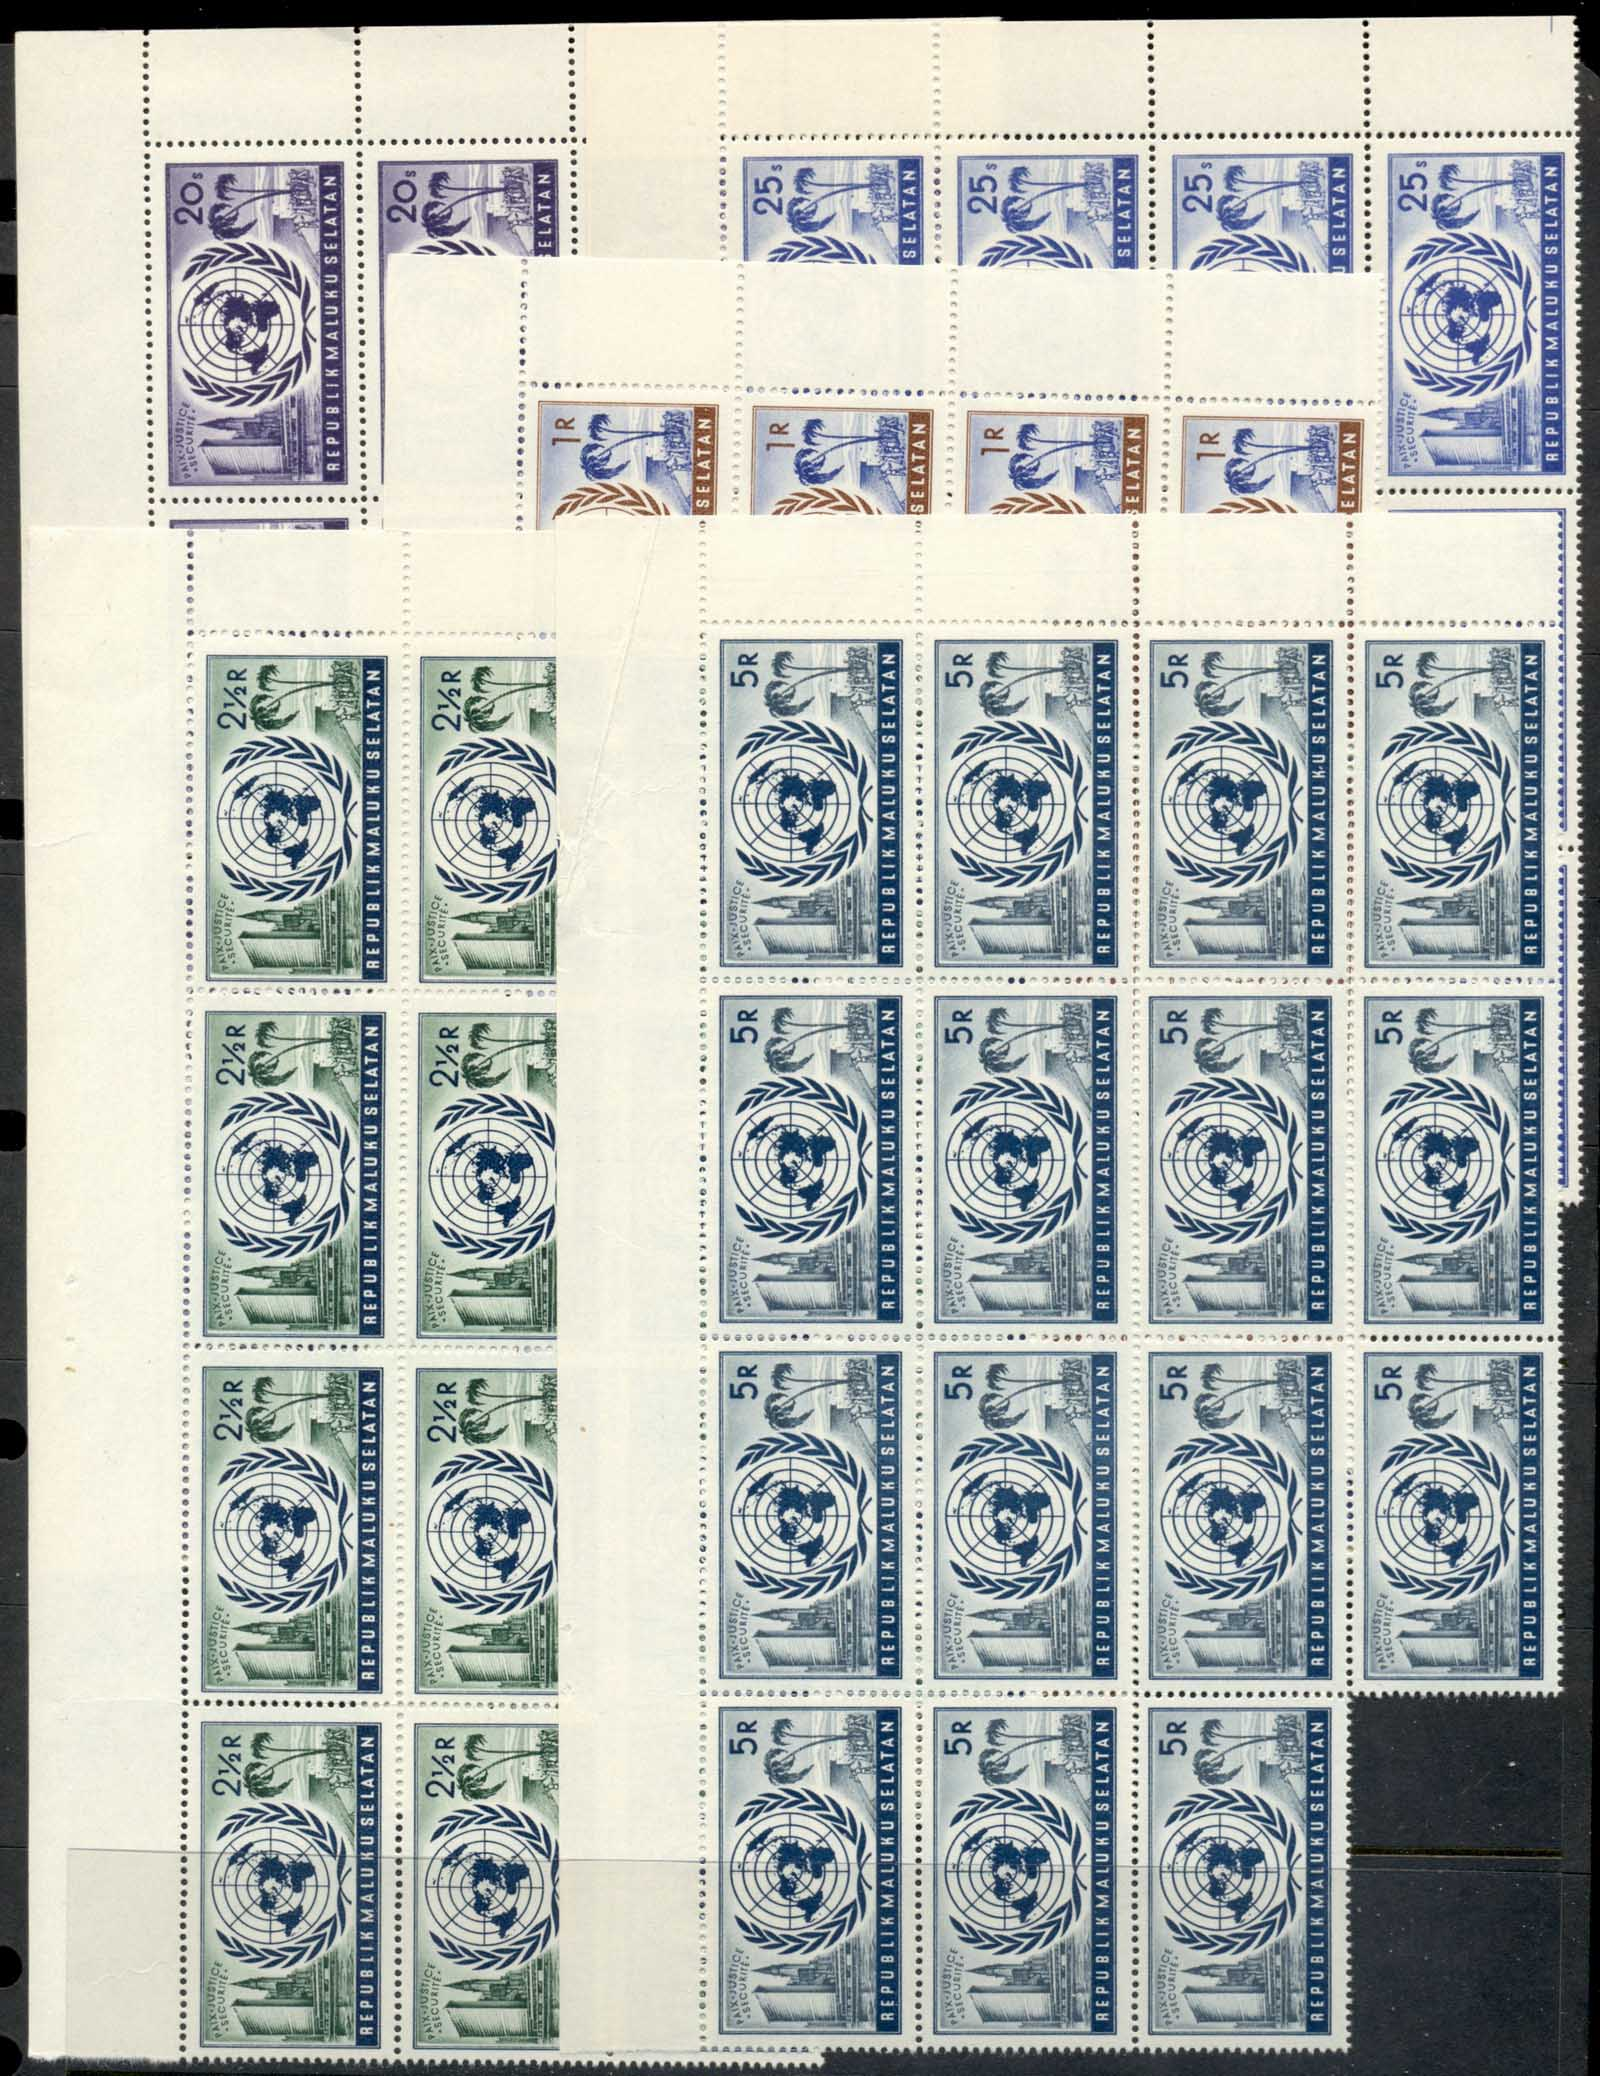 South Moluccas 1951 United Nations irregular blks15(5)(cnr faults) , 29,25s, 1,2.5,5r MUH